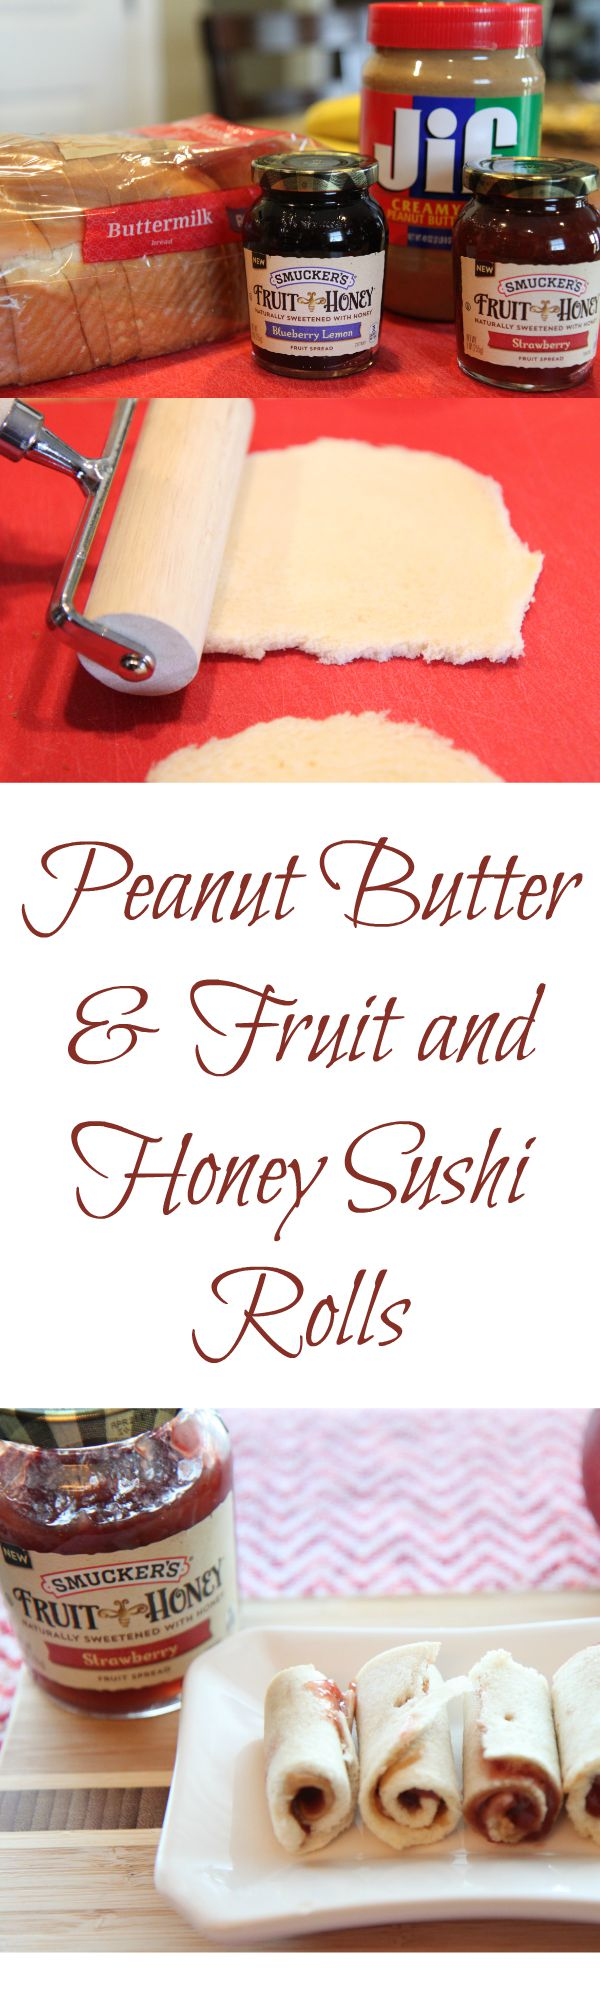 Delicious Peanut Butter and Fruit and Honey Sushi Rolls